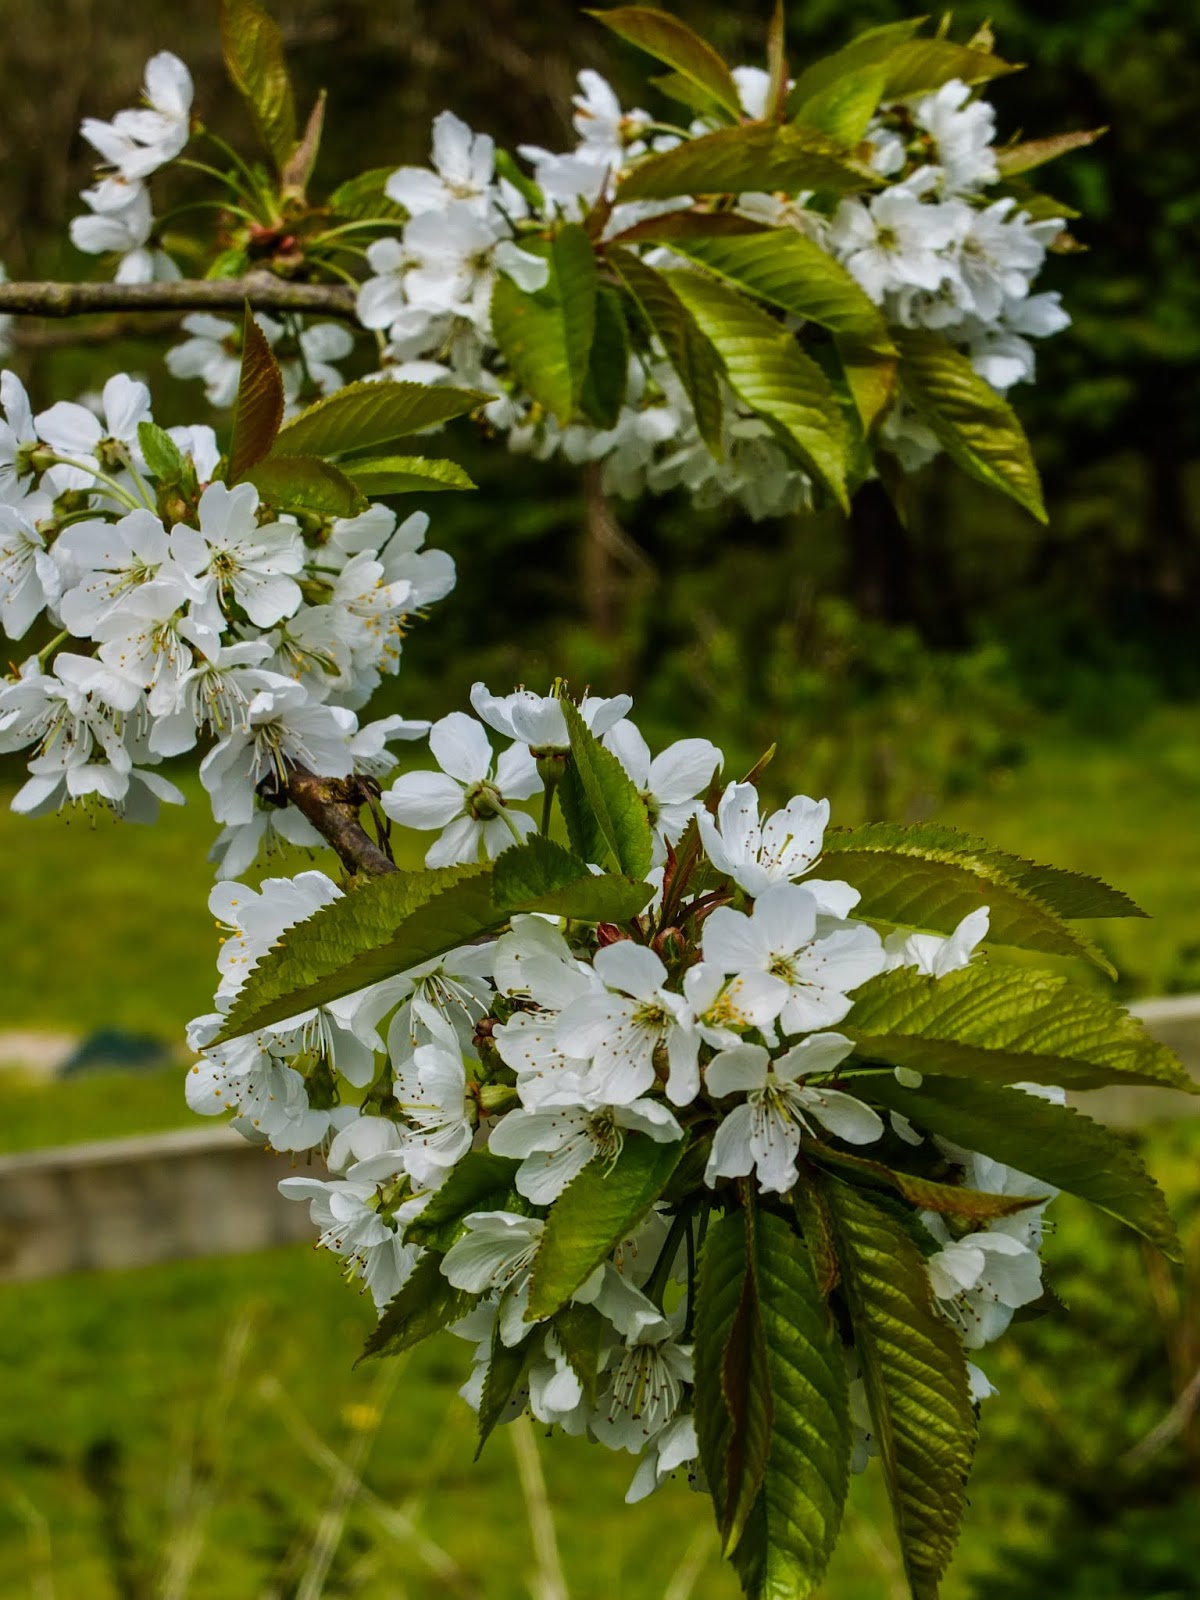 Cherry tree flowers on the tips of branches.